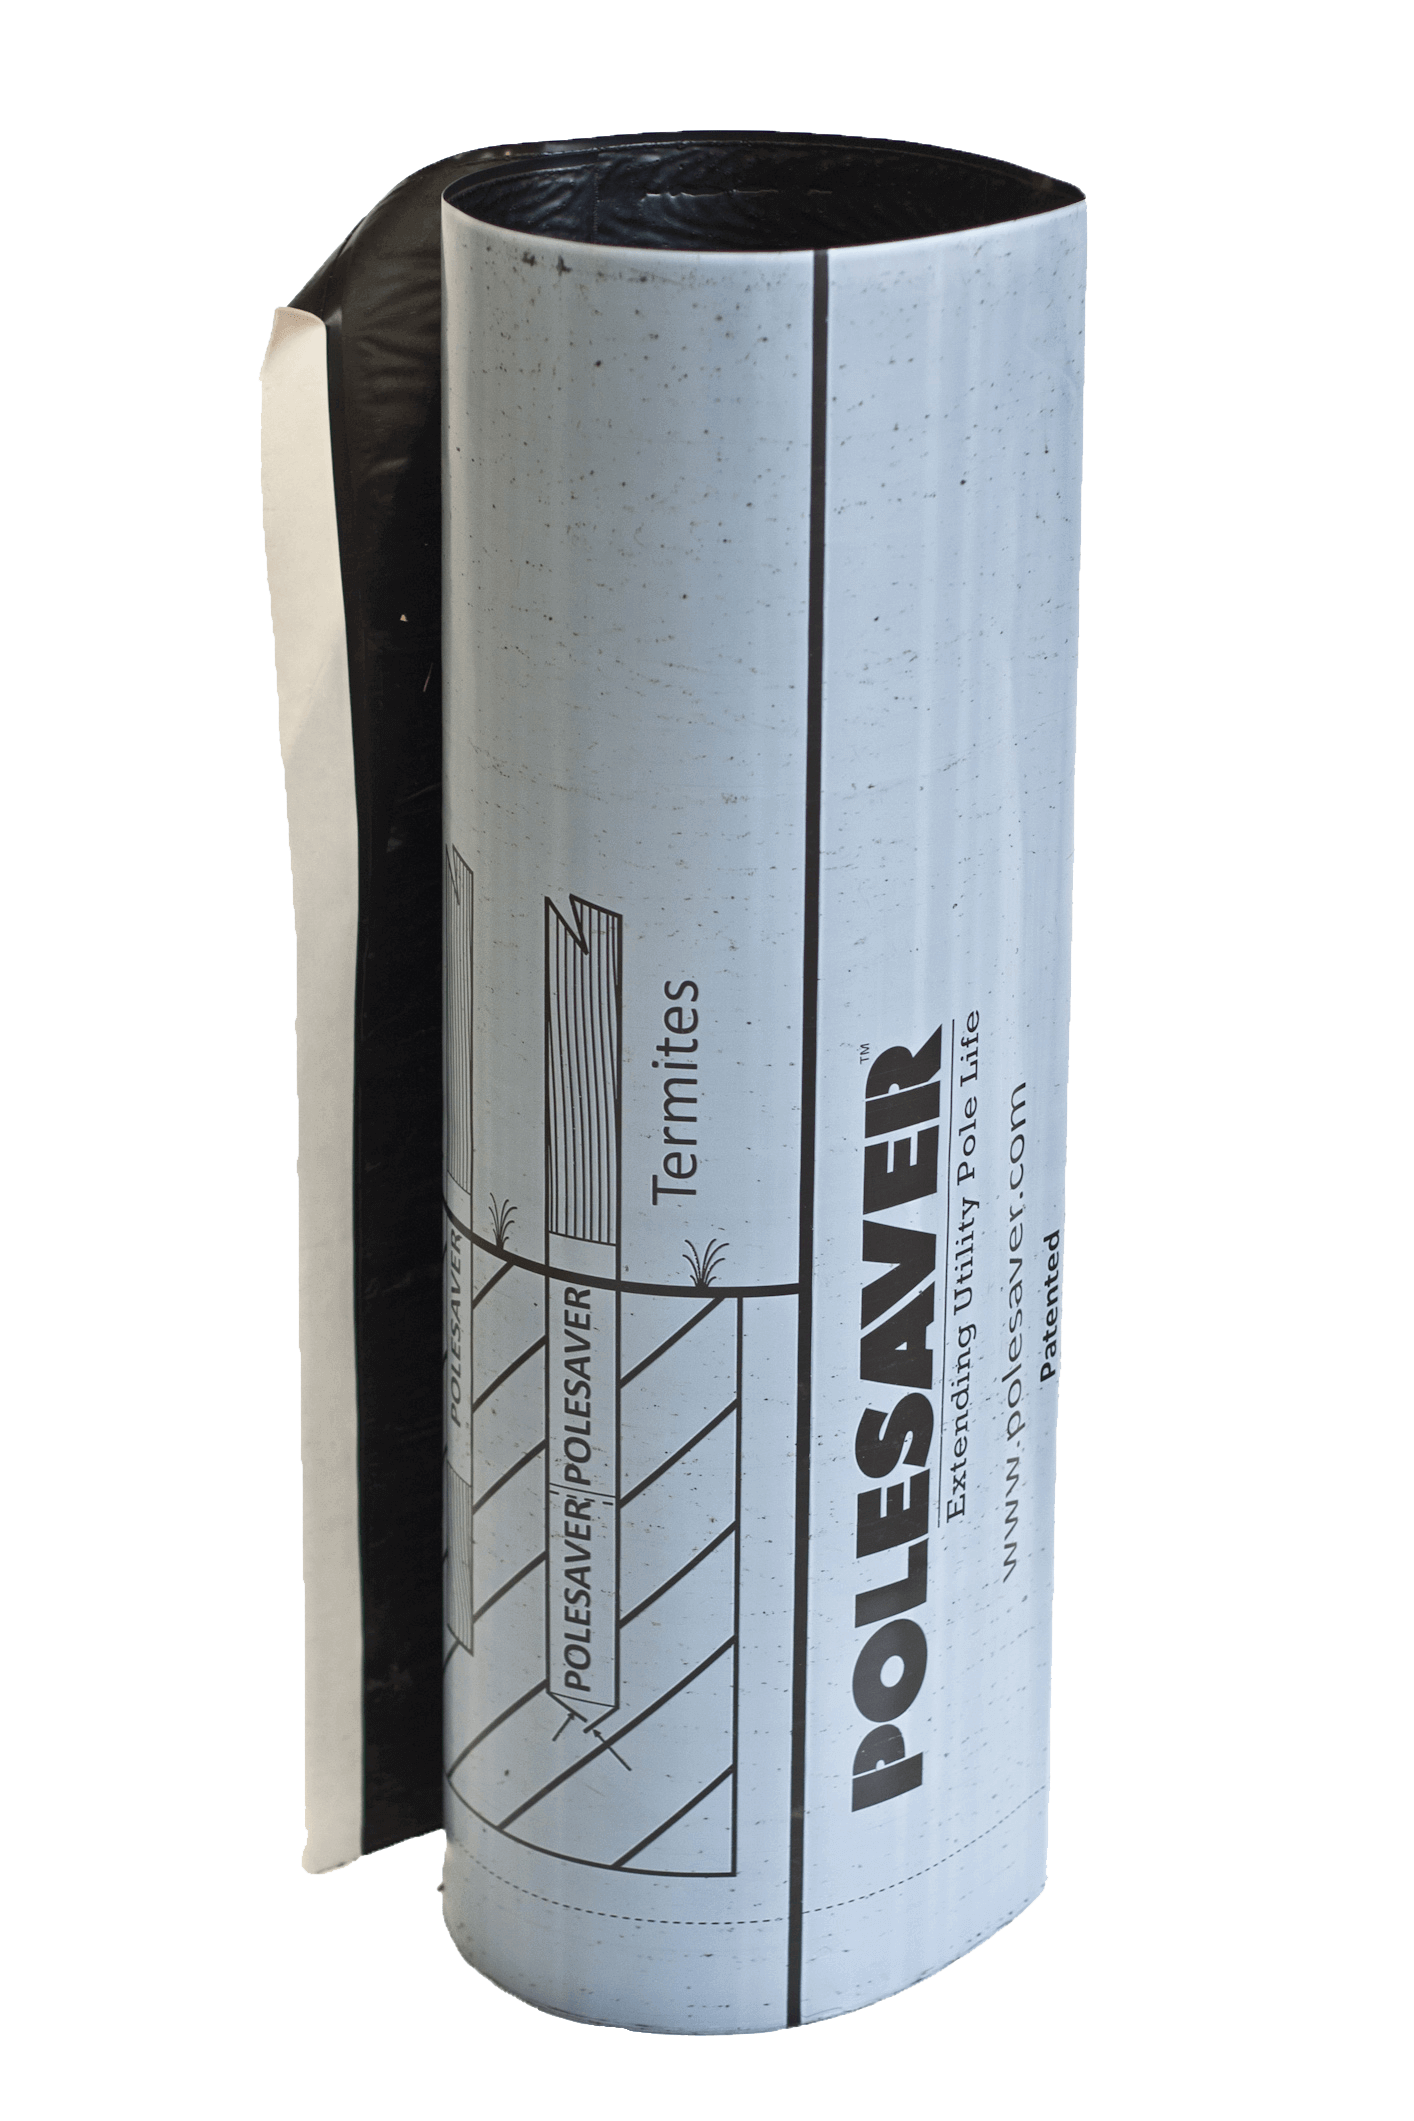 Image showing Polesaver Sleeve stood up but not on a pole. The sleeve is grey in colour, featuring a tough thermoplastic outer sleeve lined with a bituminous sealant.